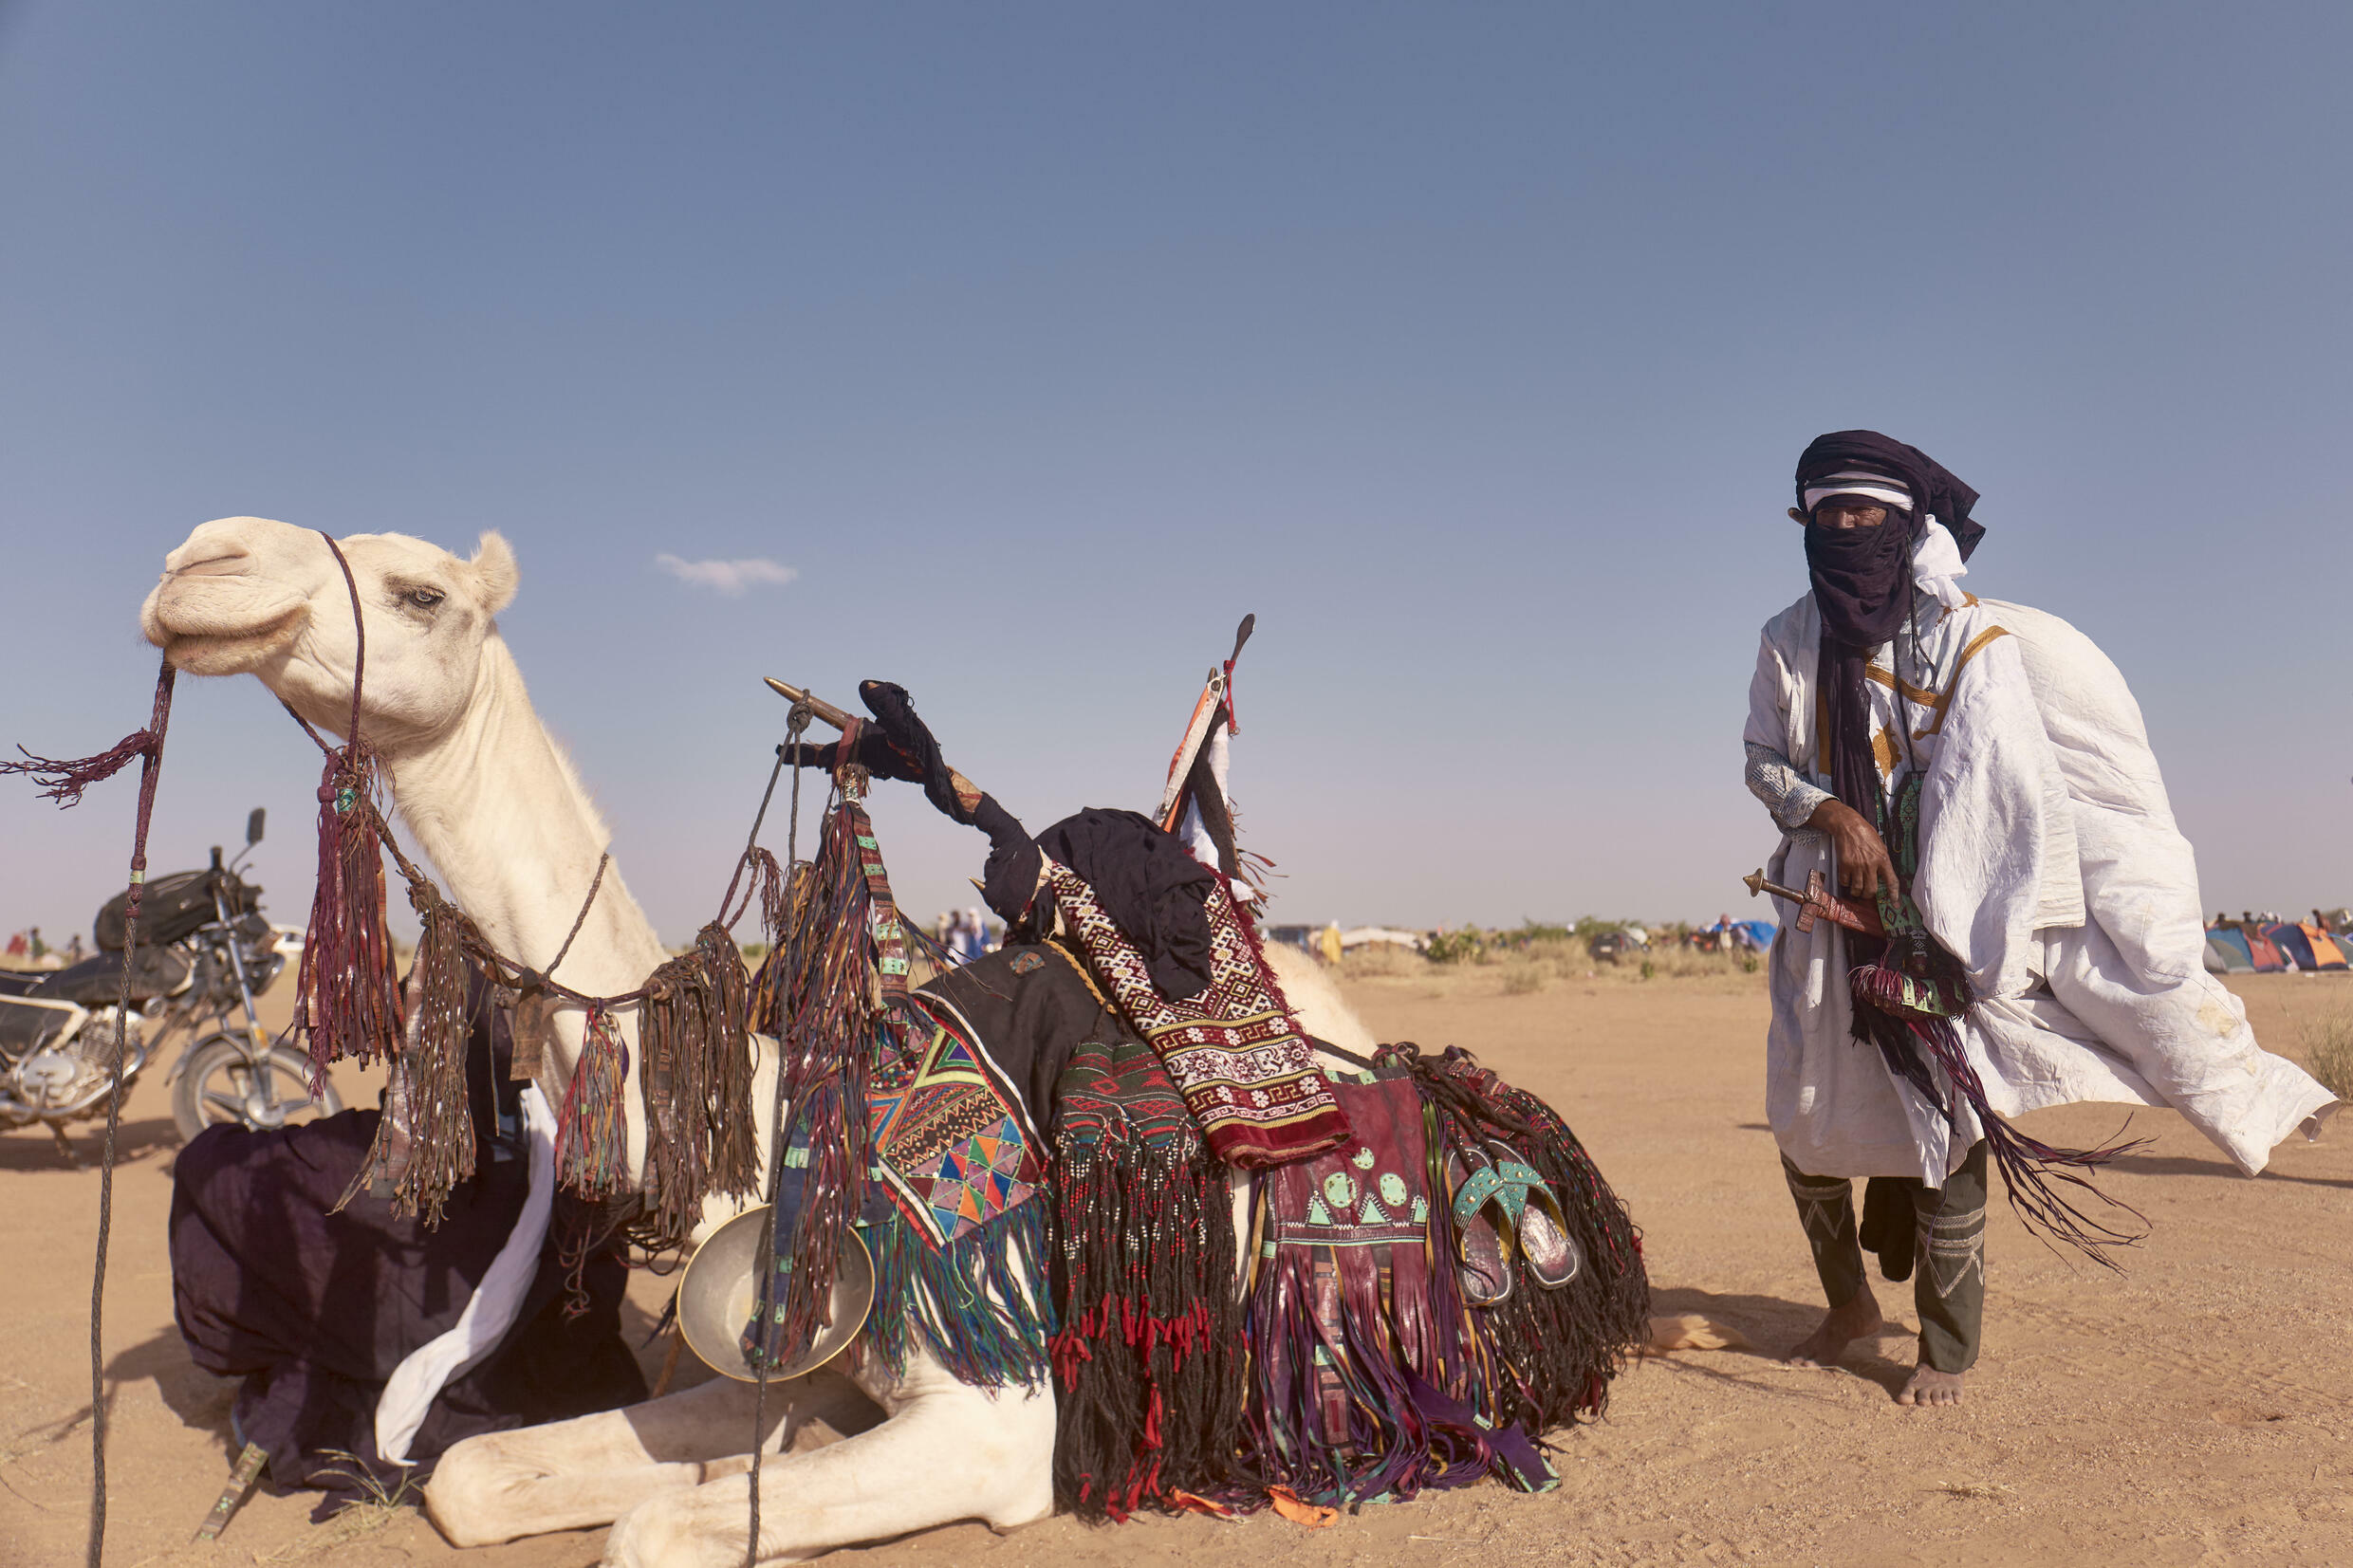 The festival is a celebration of nomadic culture